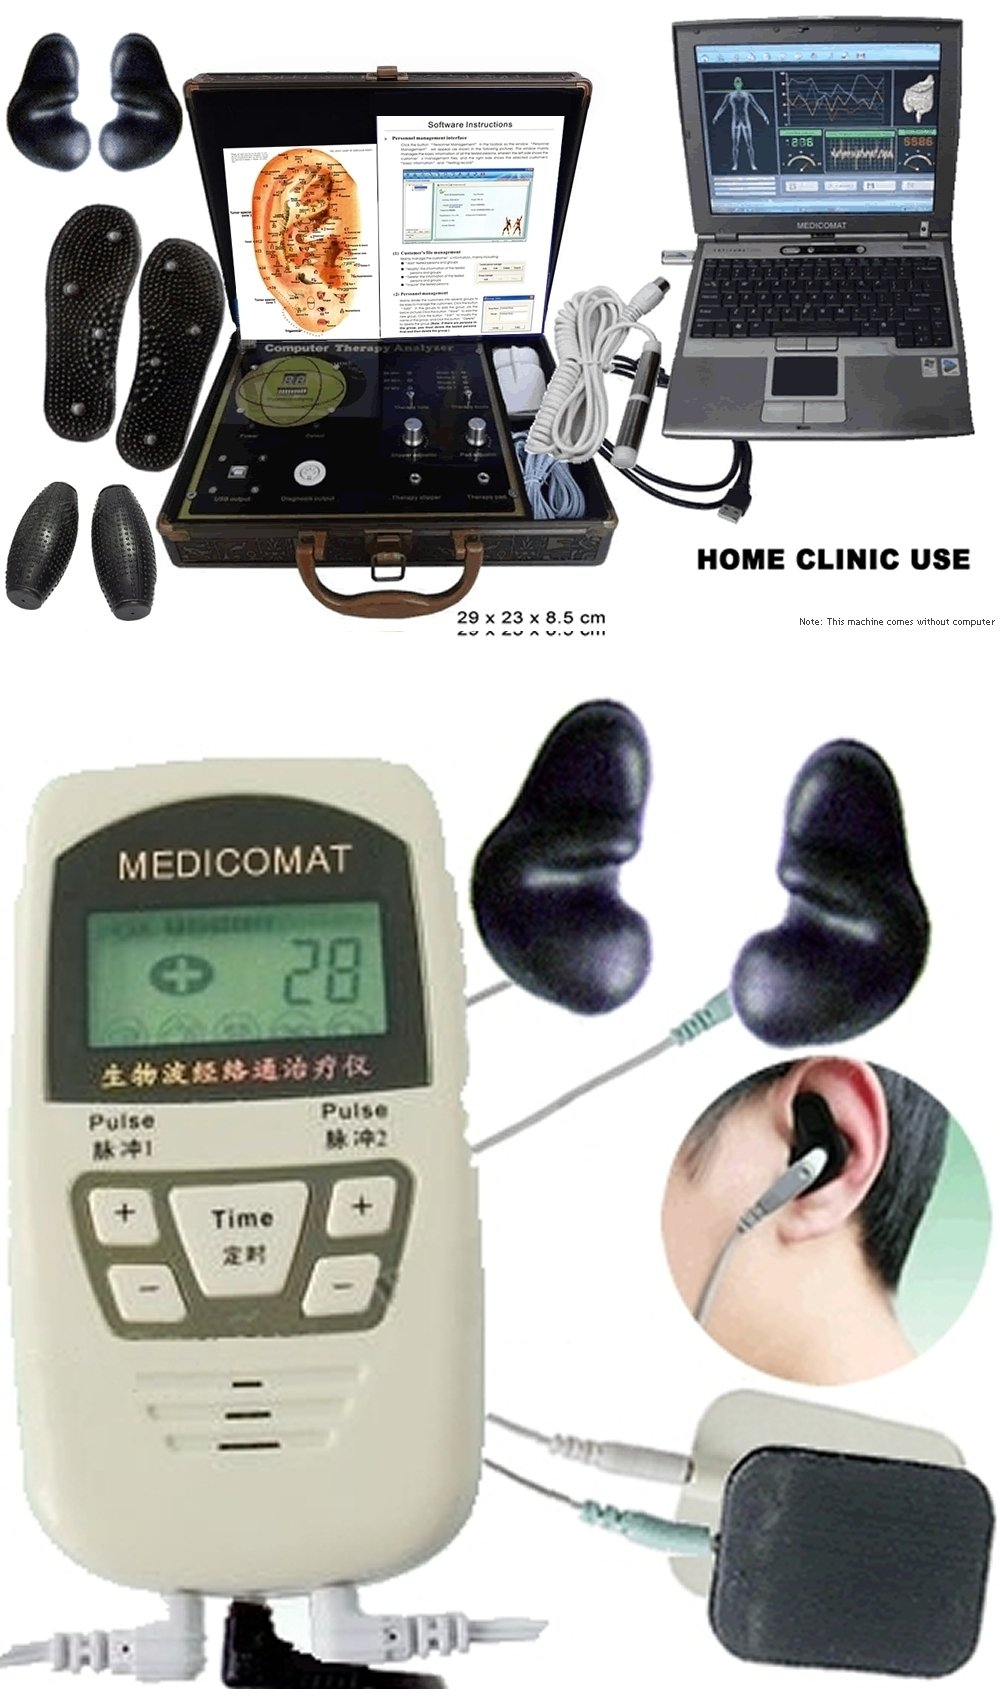 Healthcare Software Solutions Pack_2 (SAVE $100): Healthcare Analyzer Therapeutic Computer + Handheld Acupuncture Treatment (Medicomat29+ and Medicomat-10) Early Detection and Early Treatment